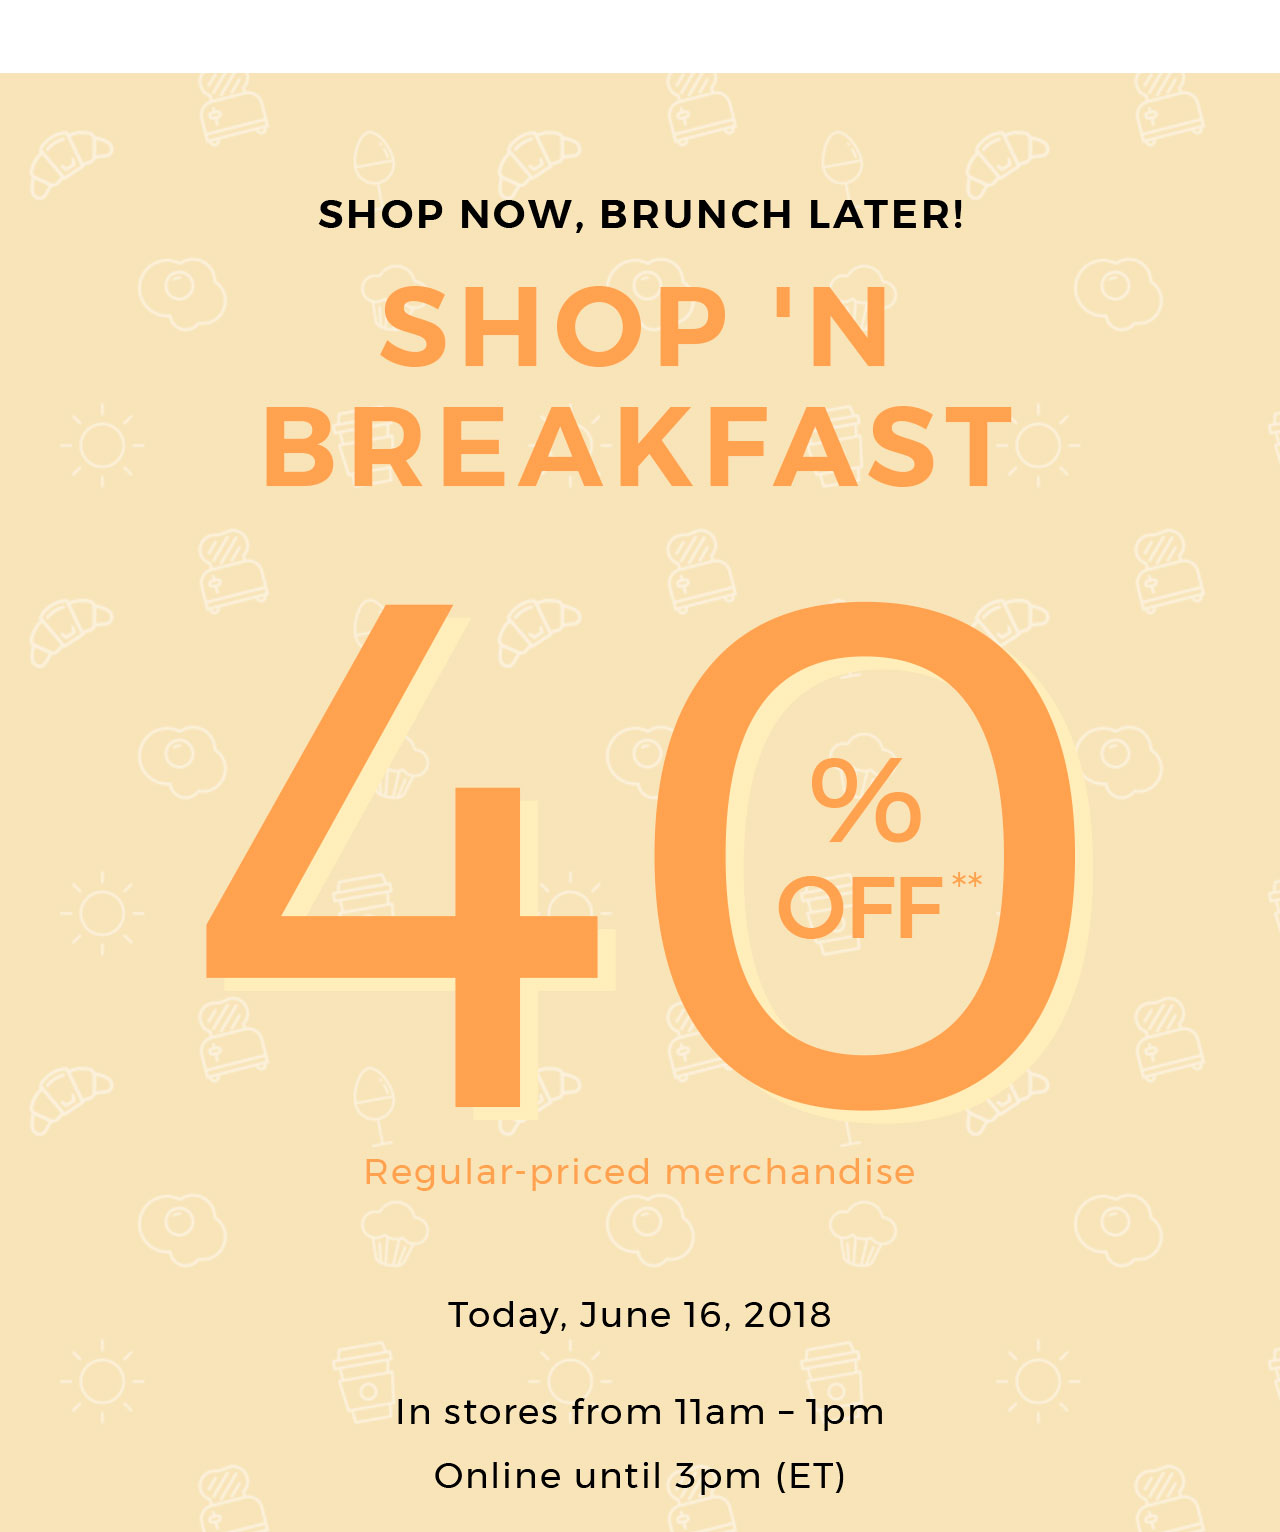 Shop'n breakfast